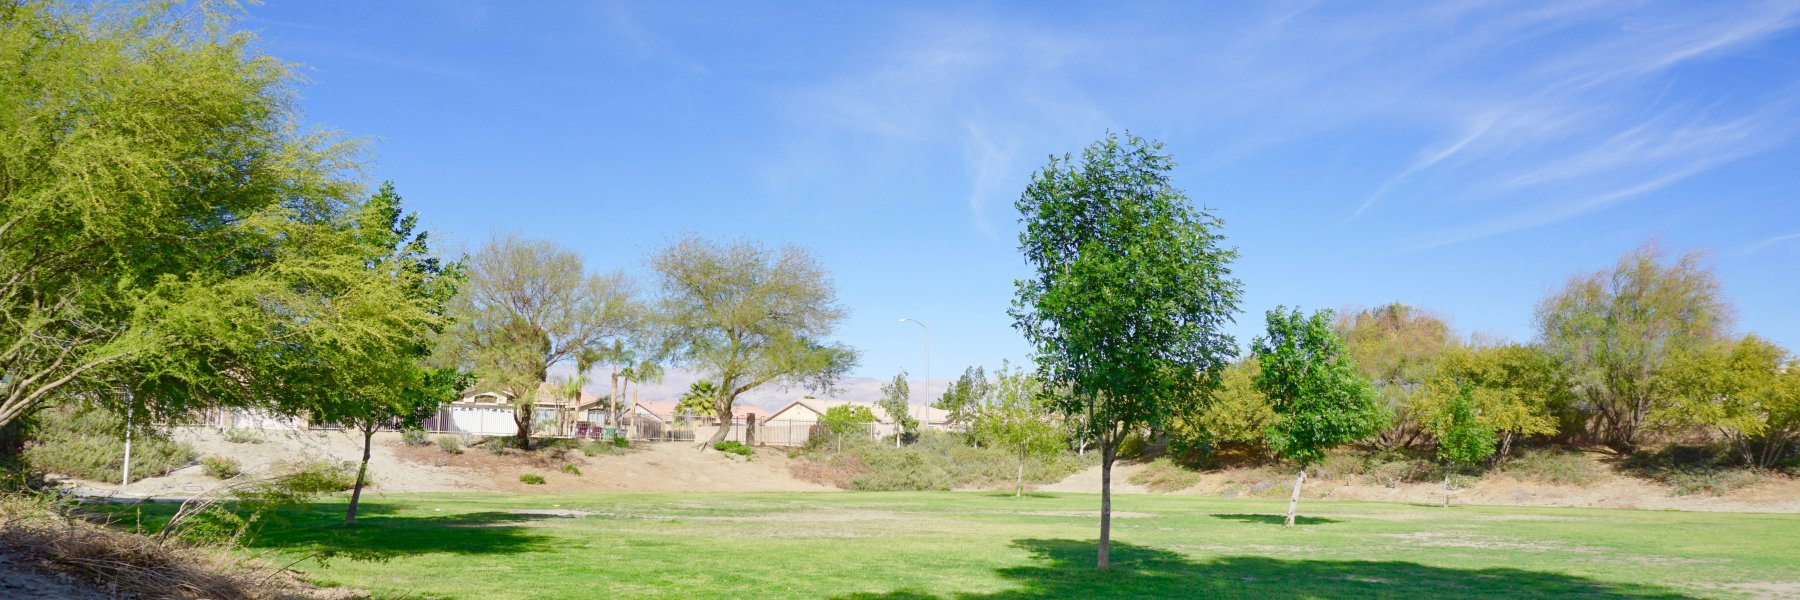 Villa Montego is a community of homes in Indio California